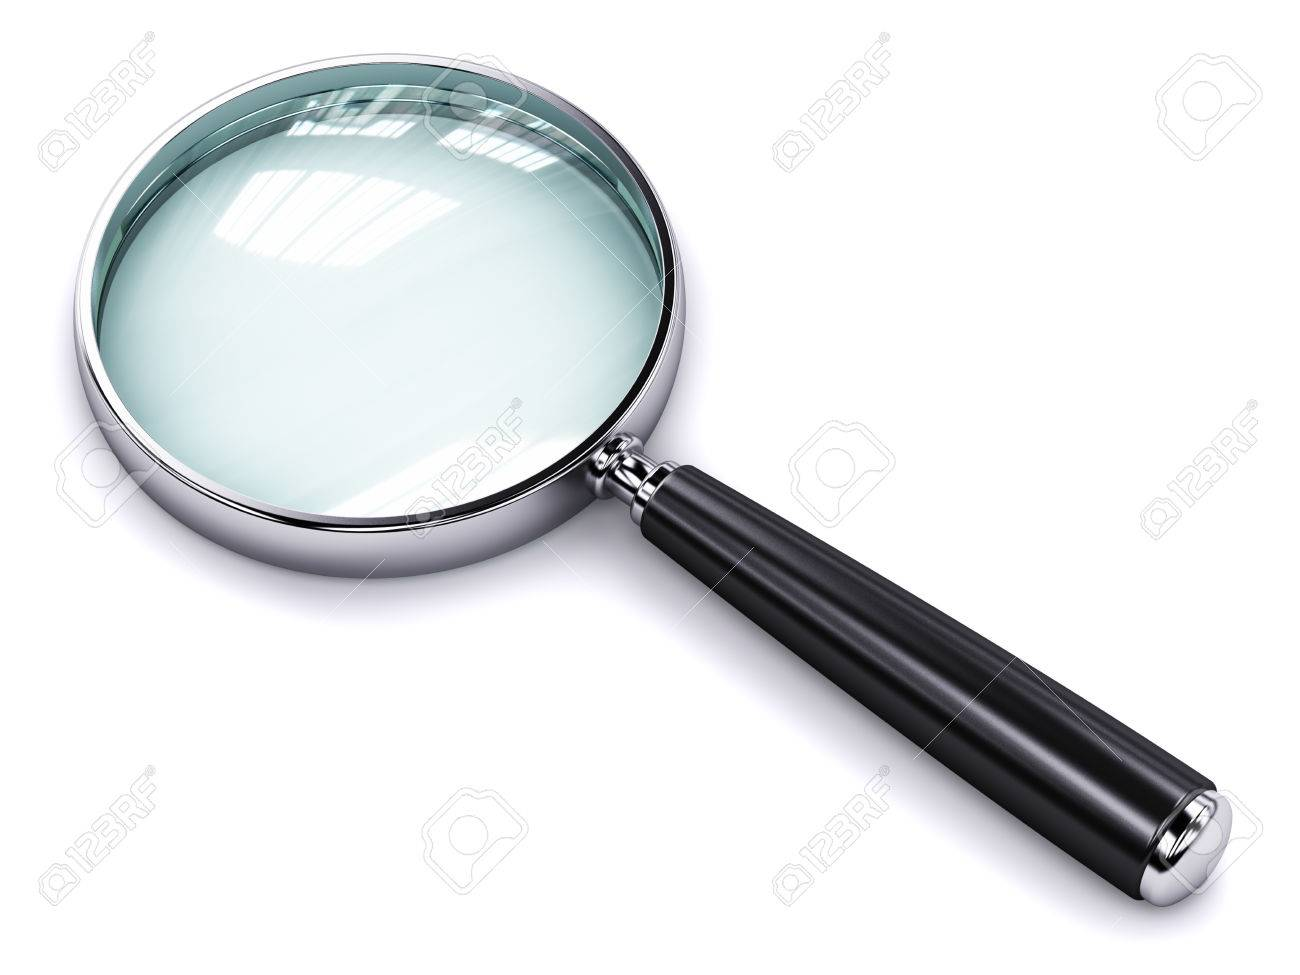 Creative abstract search, seek and find information business office technology internet concept: metal shiny magnifying glass or magnifier isolated on white background - 50999639